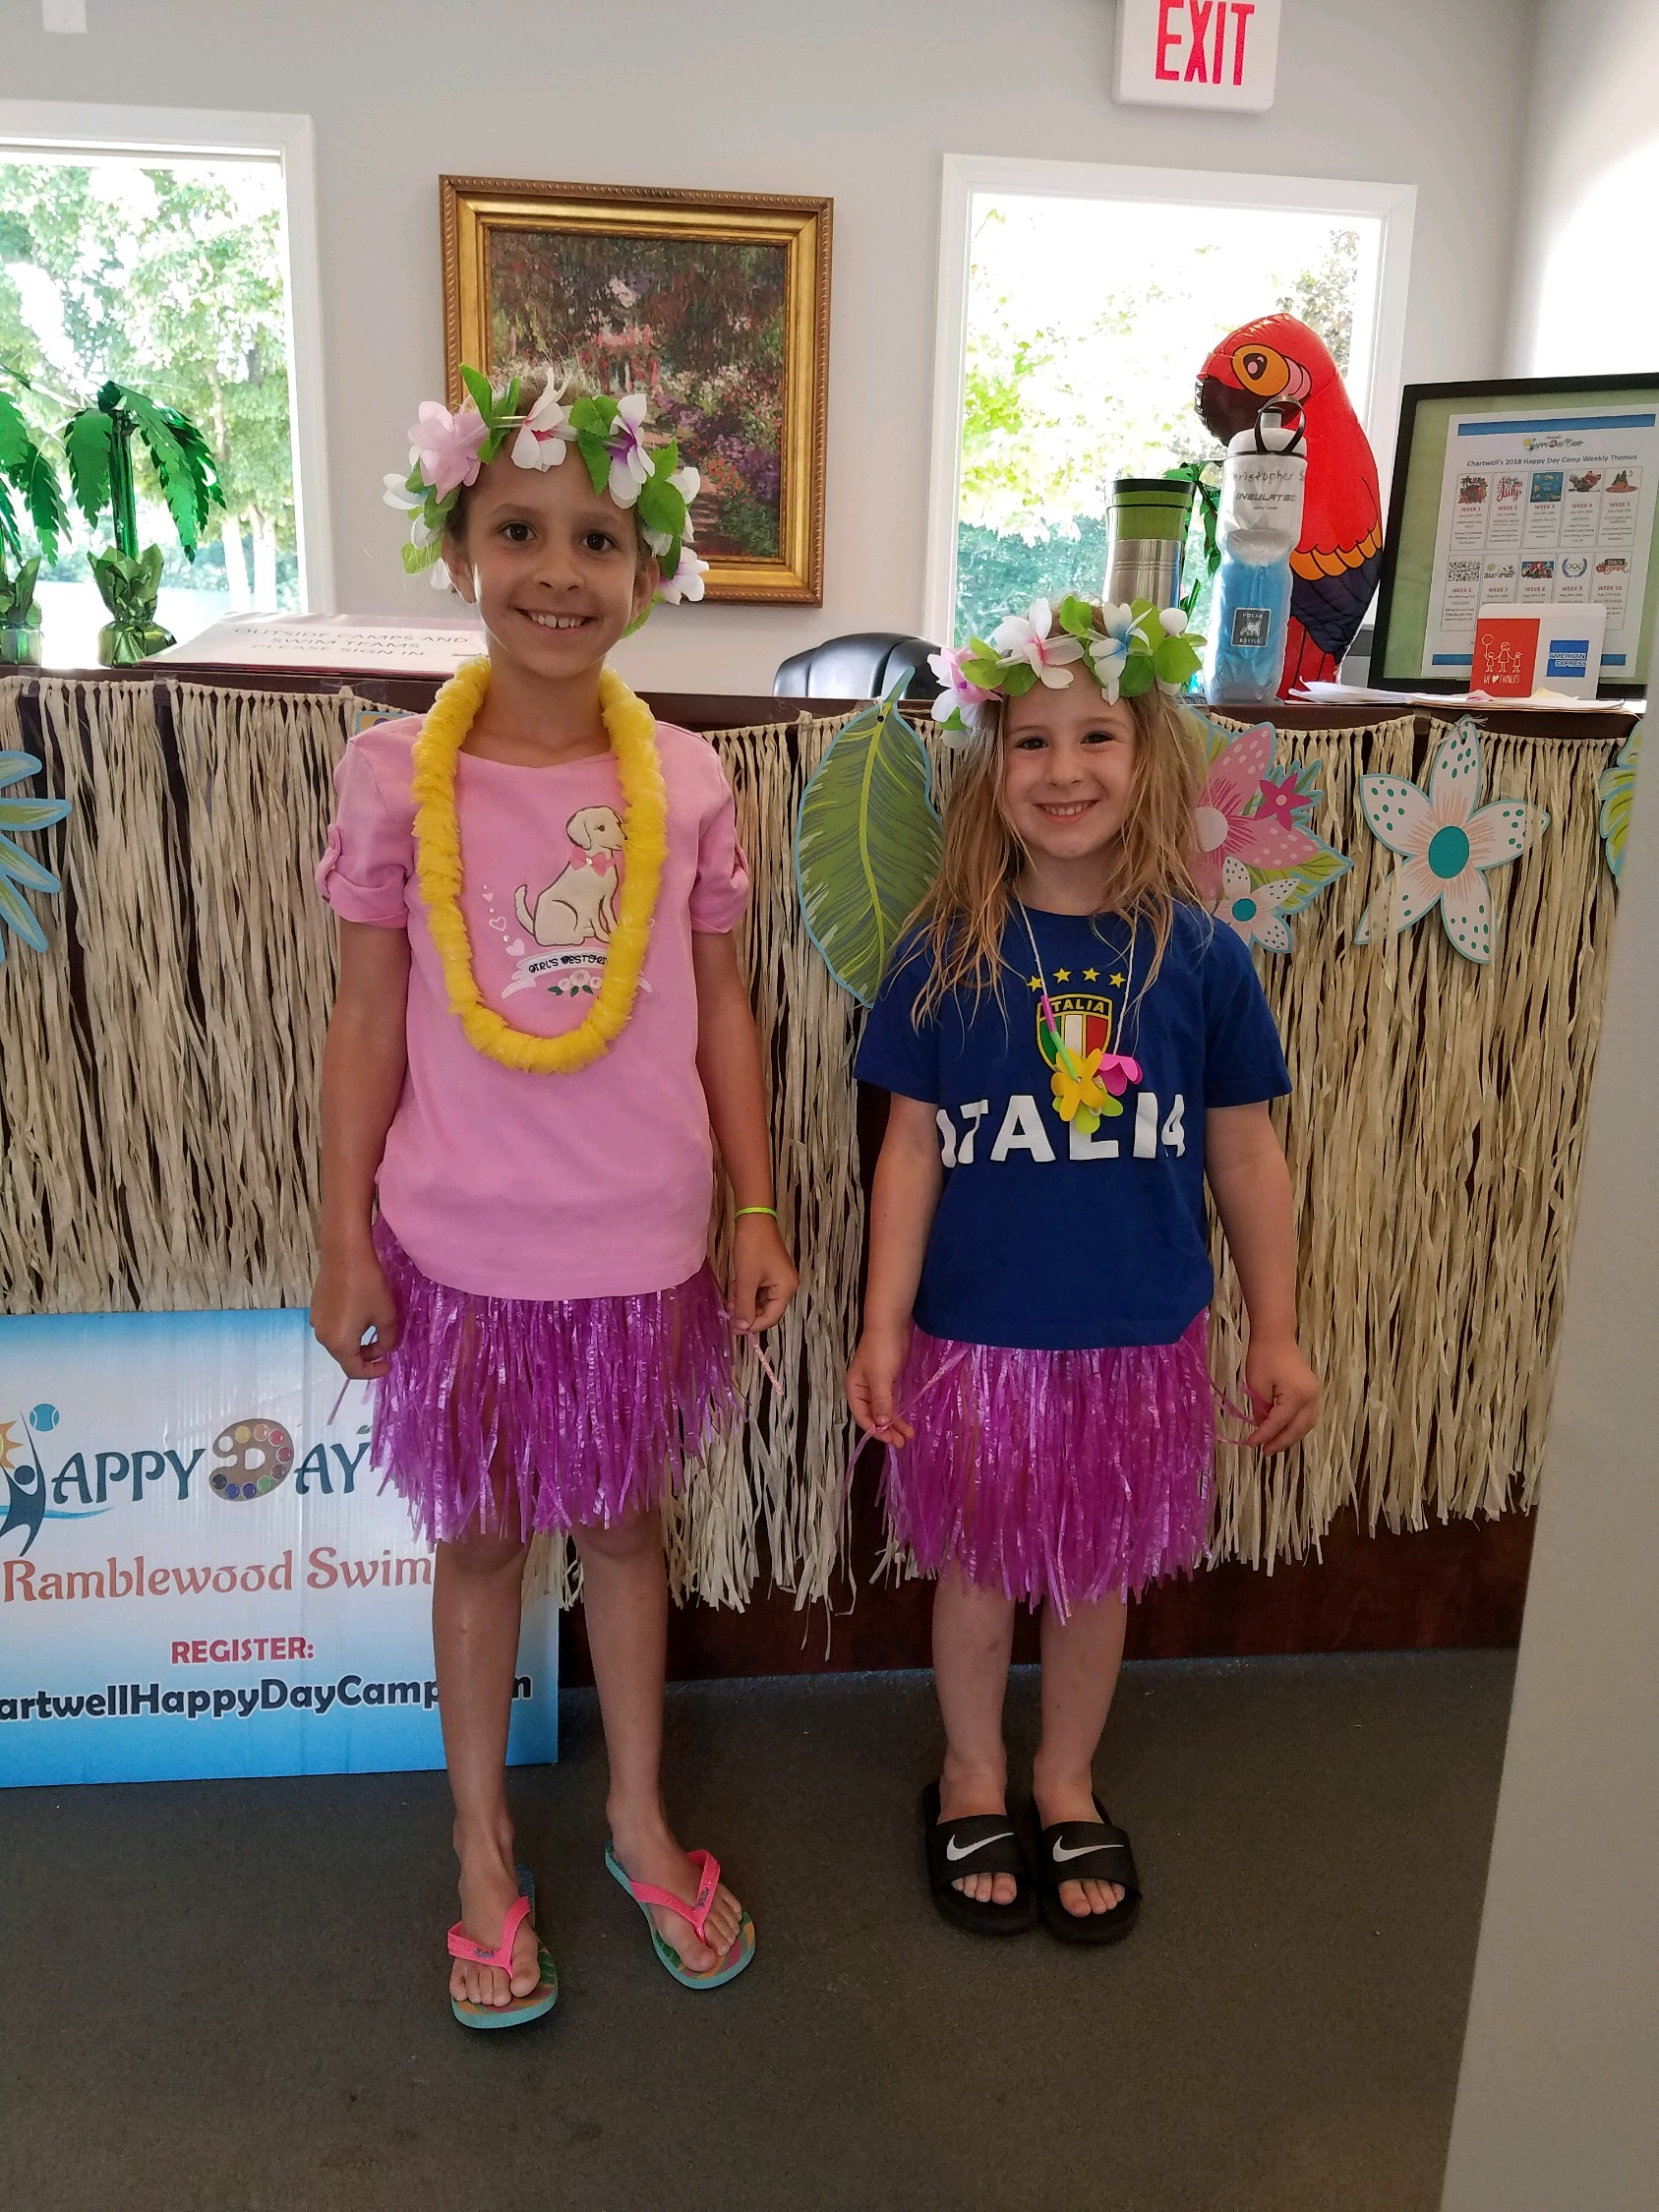 Chartwell's Happy Day Camp Marlton image 43